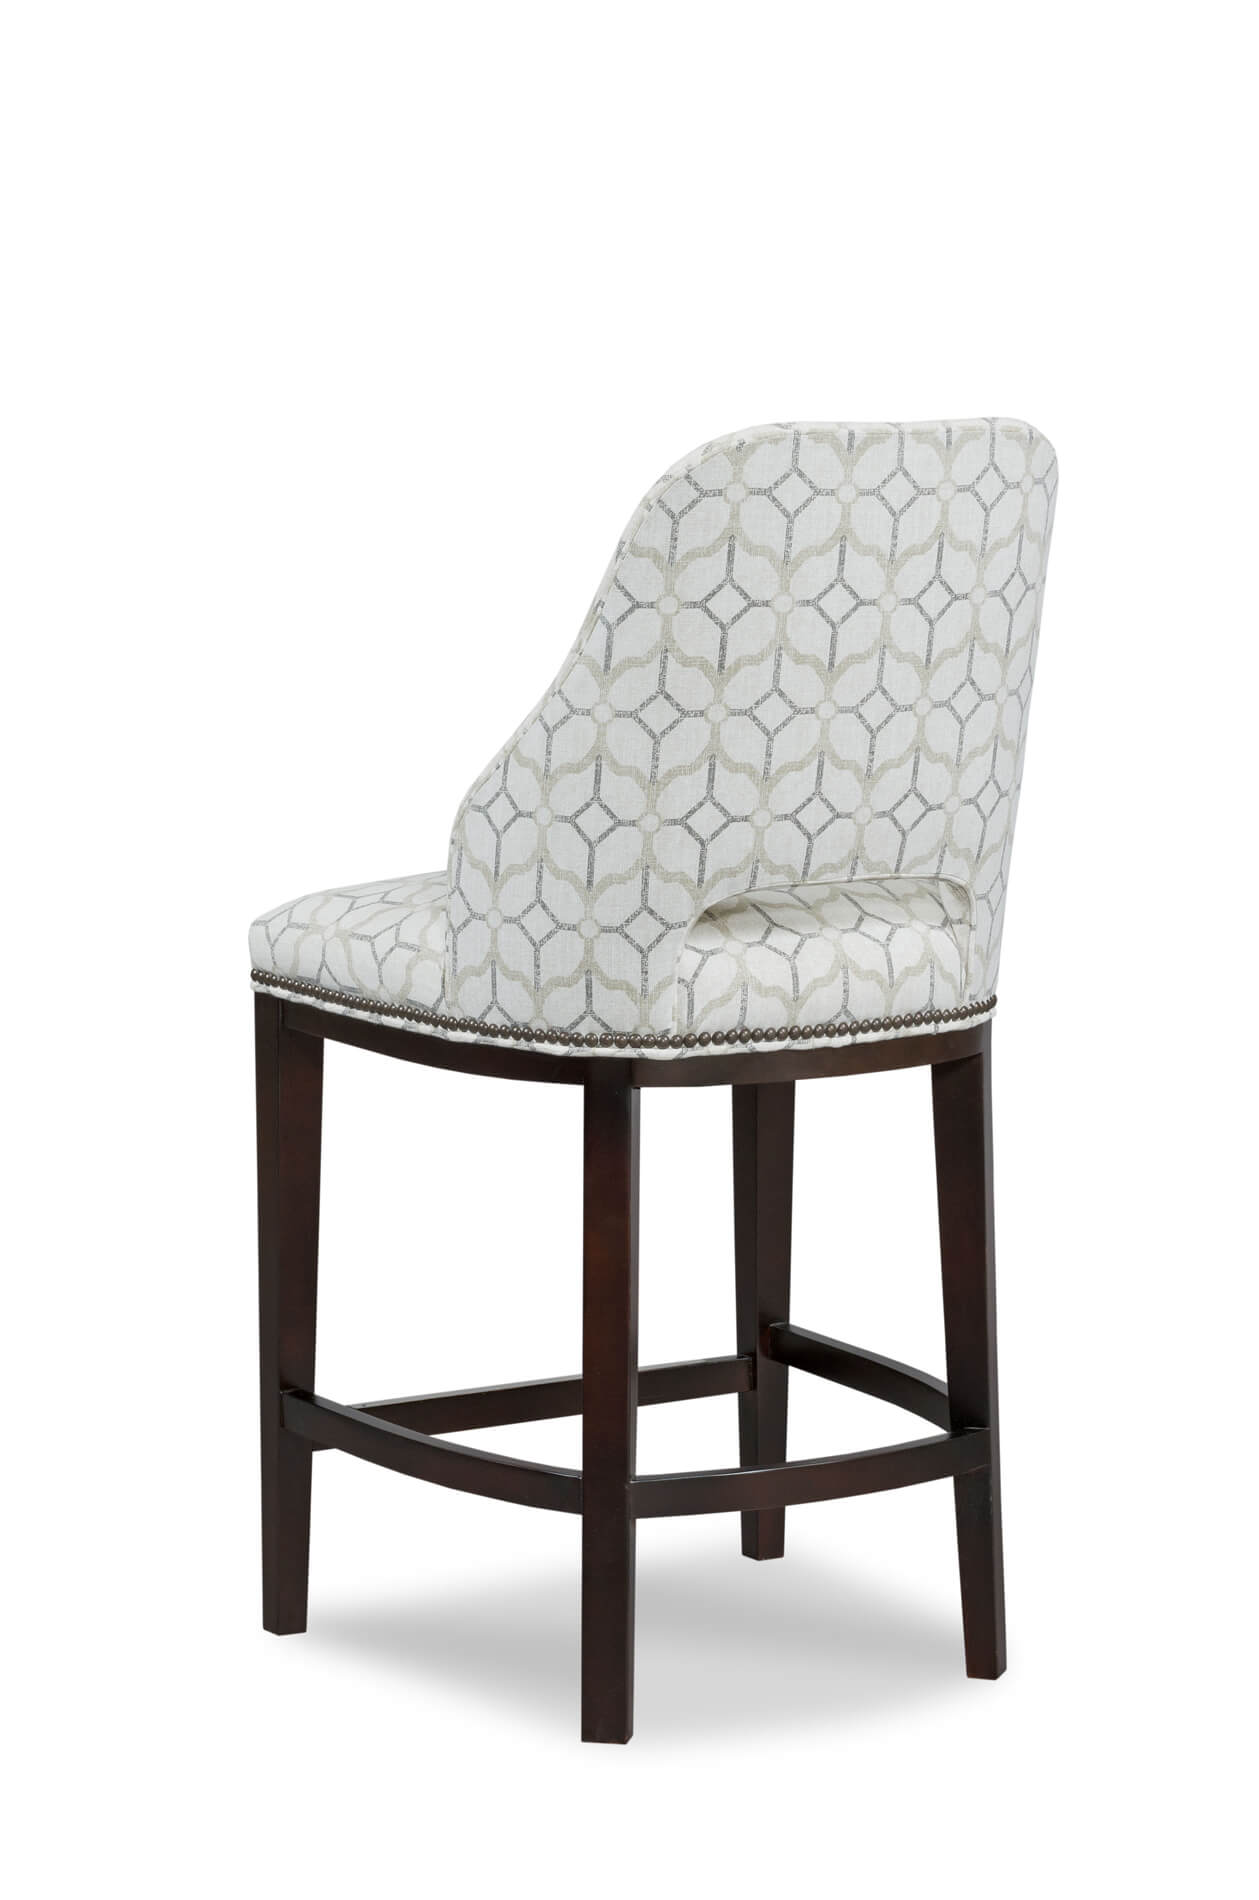 Enjoyable Darien Upholstered Wooden Stool With Back Ibusinesslaw Wood Chair Design Ideas Ibusinesslaworg